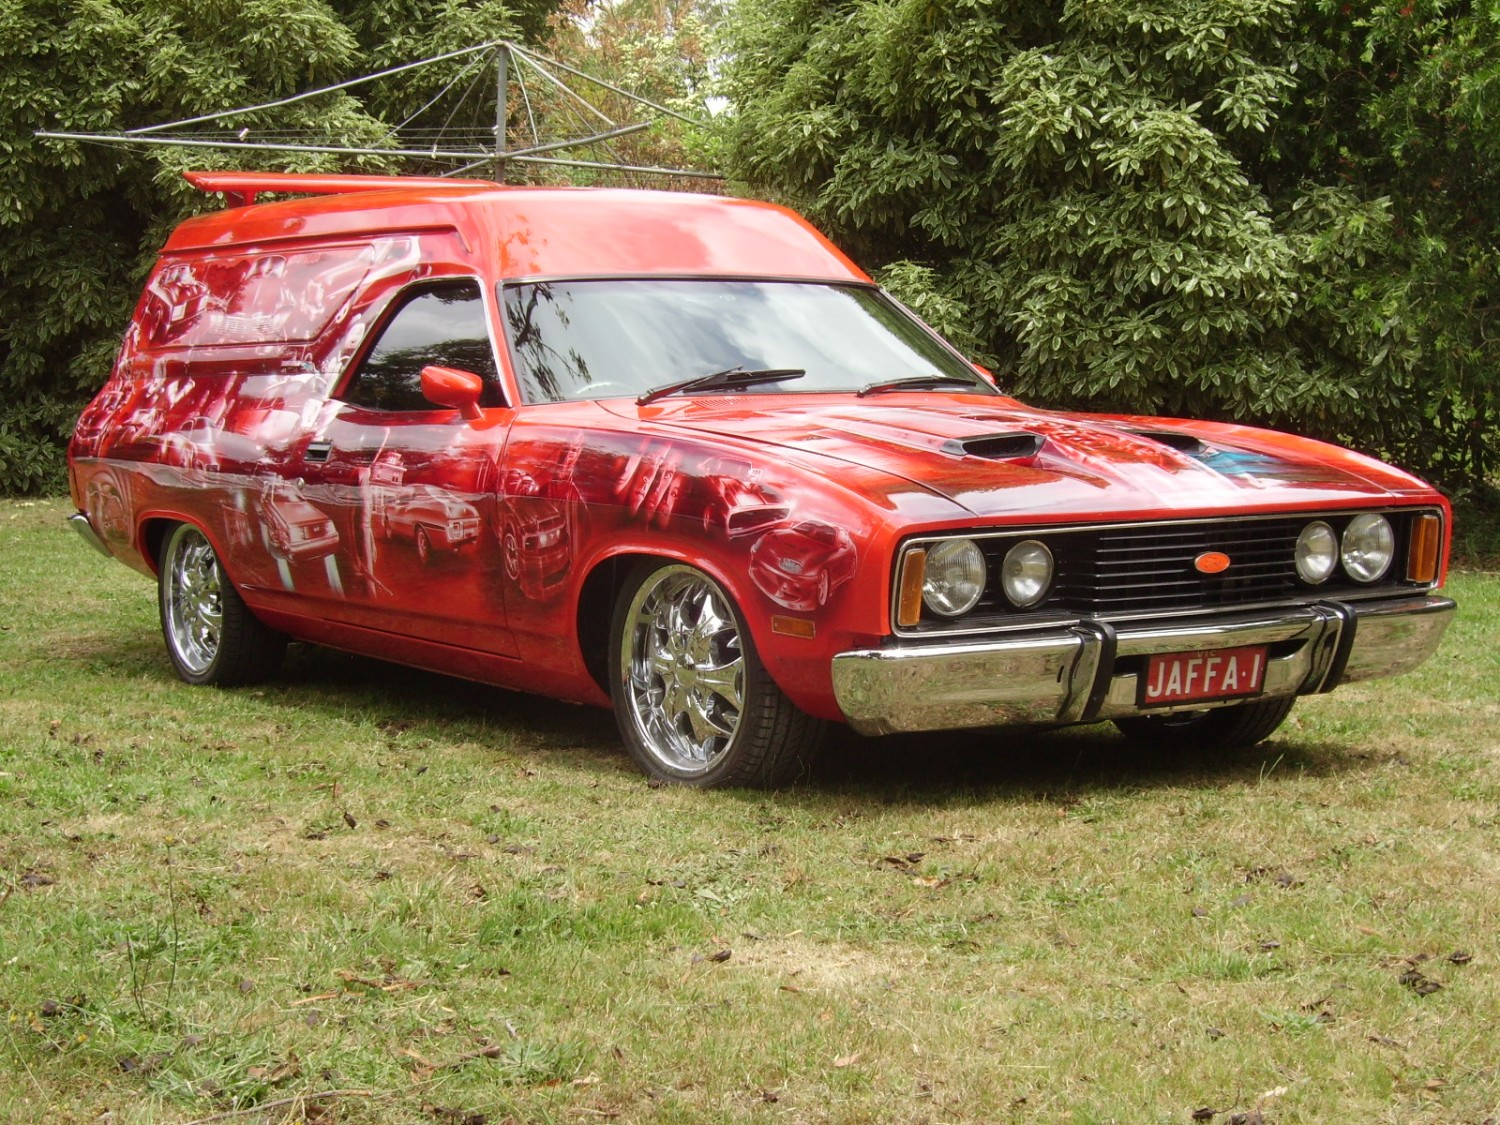 1977 Ford xc sundowner panelvan - Show & Shine - Shannons Club